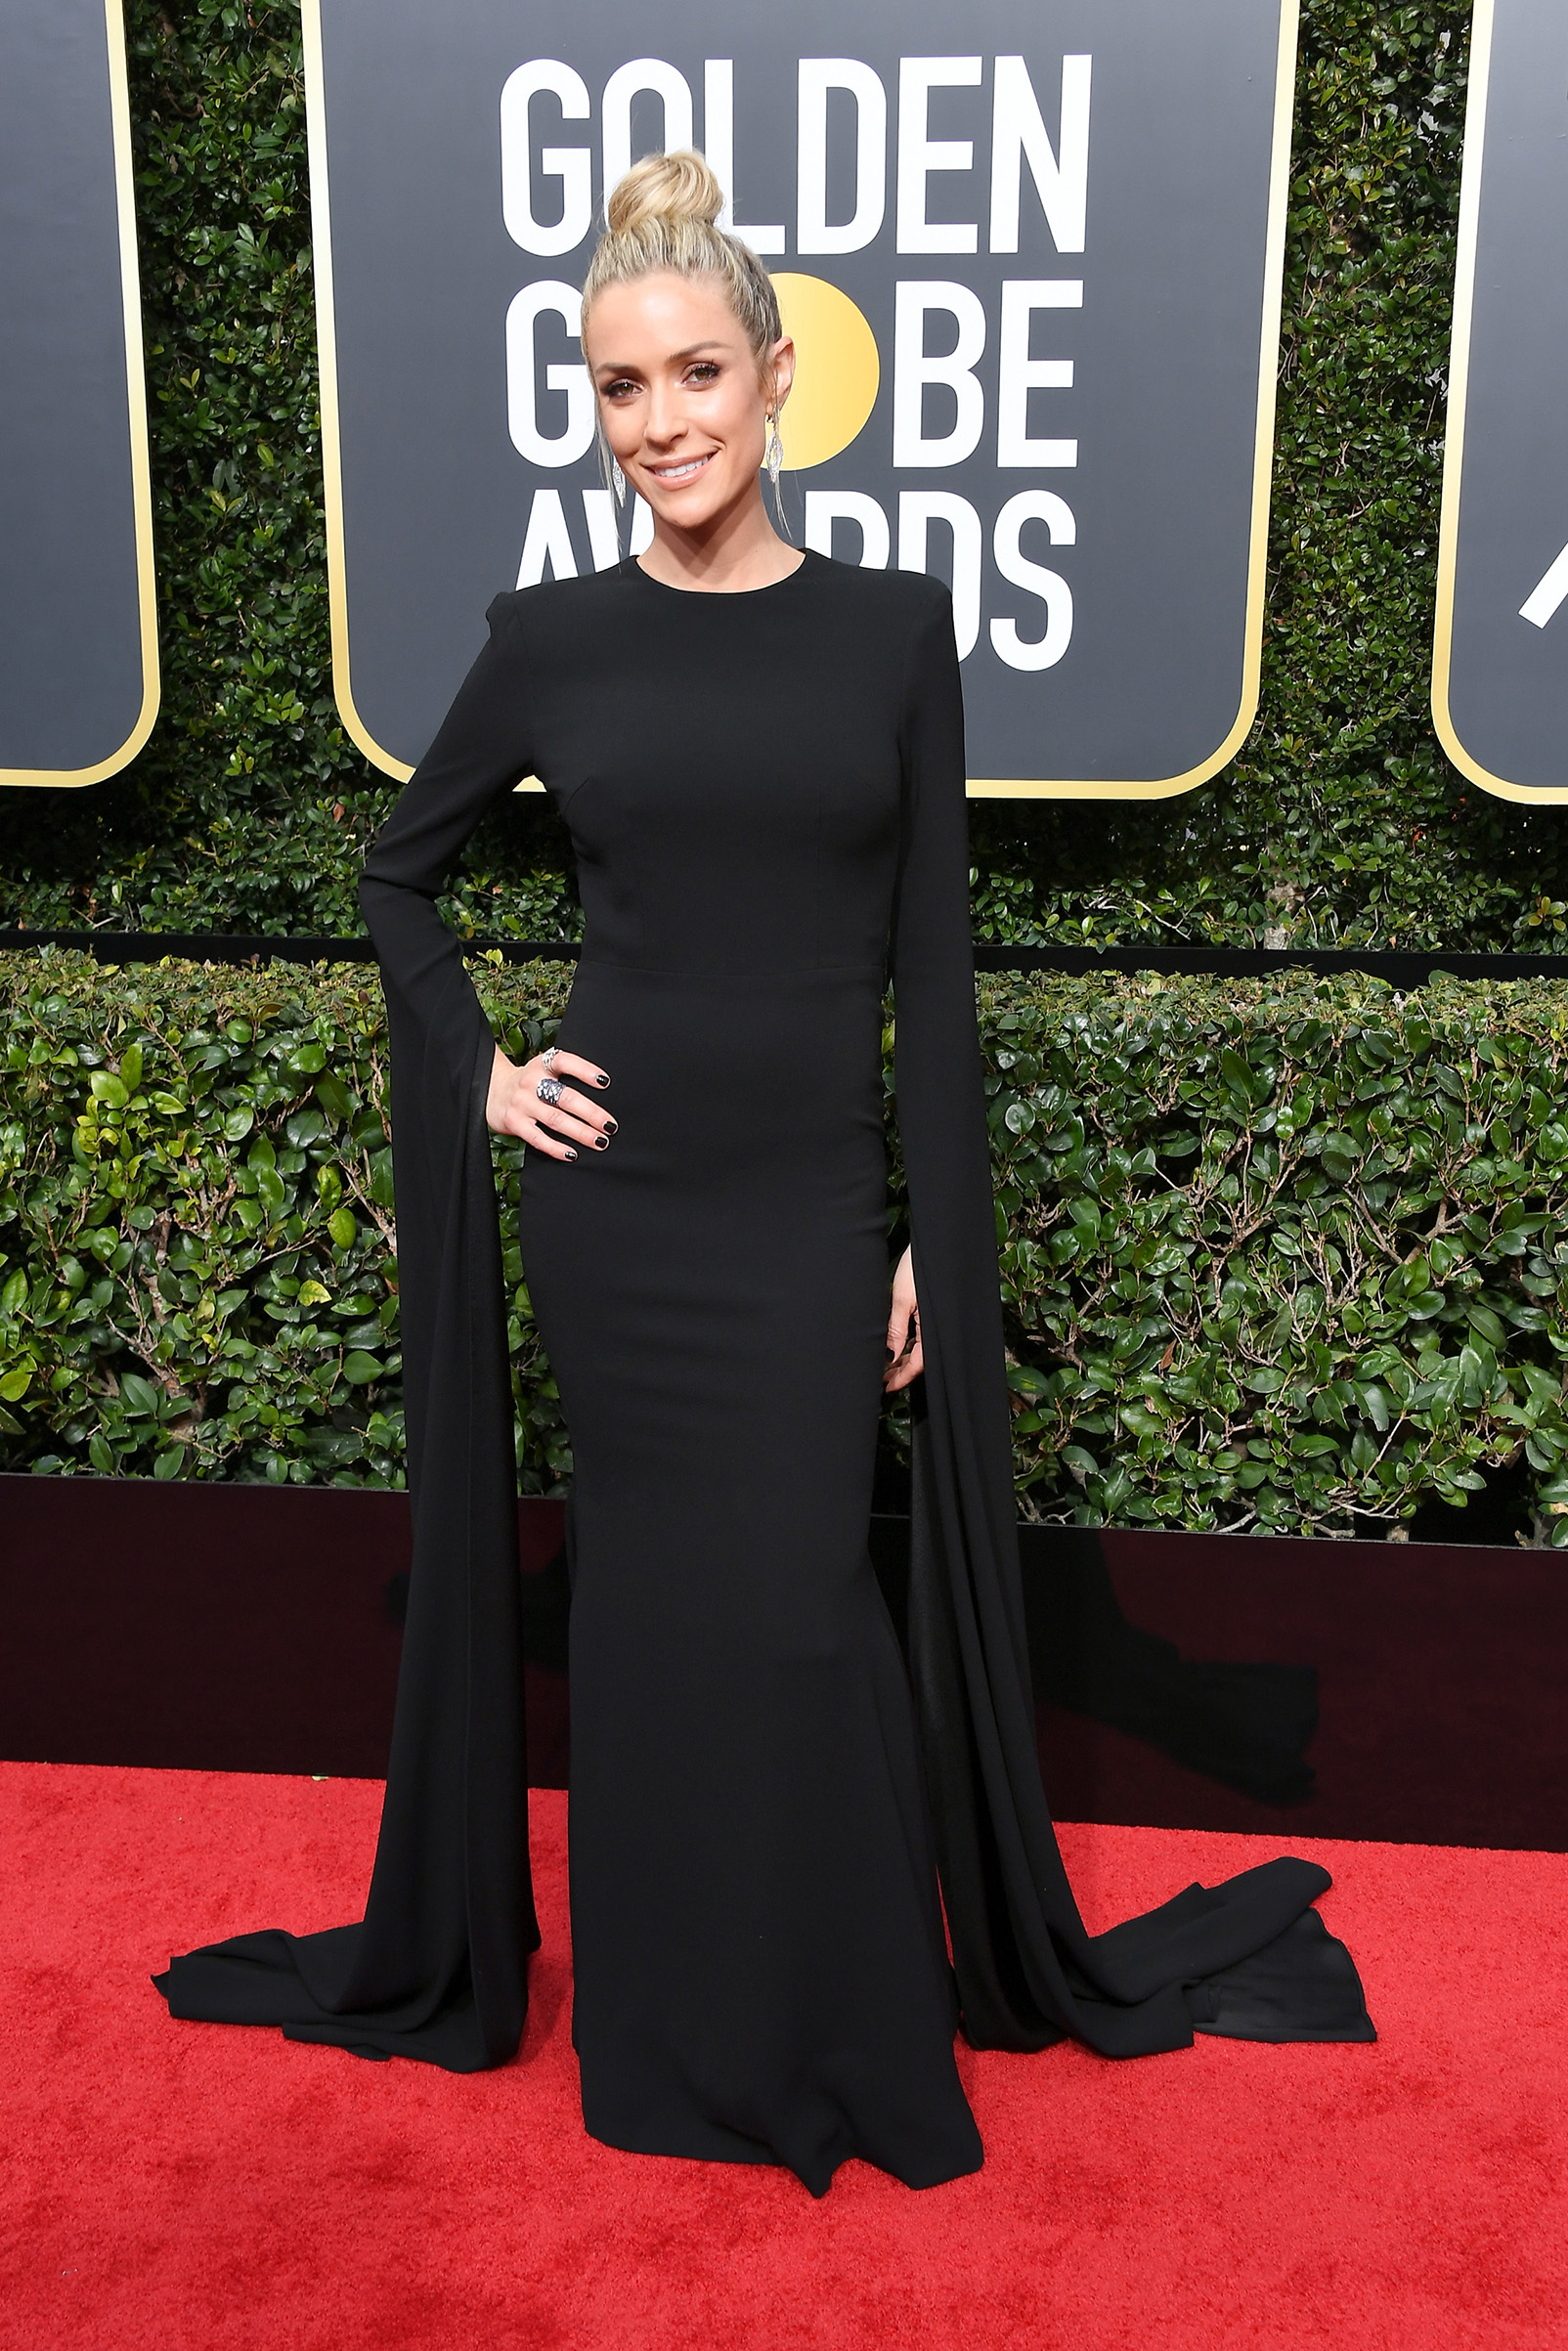 TV personality Kristin Cavallari attends The 75th Annual Golden Globe Awards at The Beverly Hilton Hotel on January 7, 2018 in Beverly Hills, California.